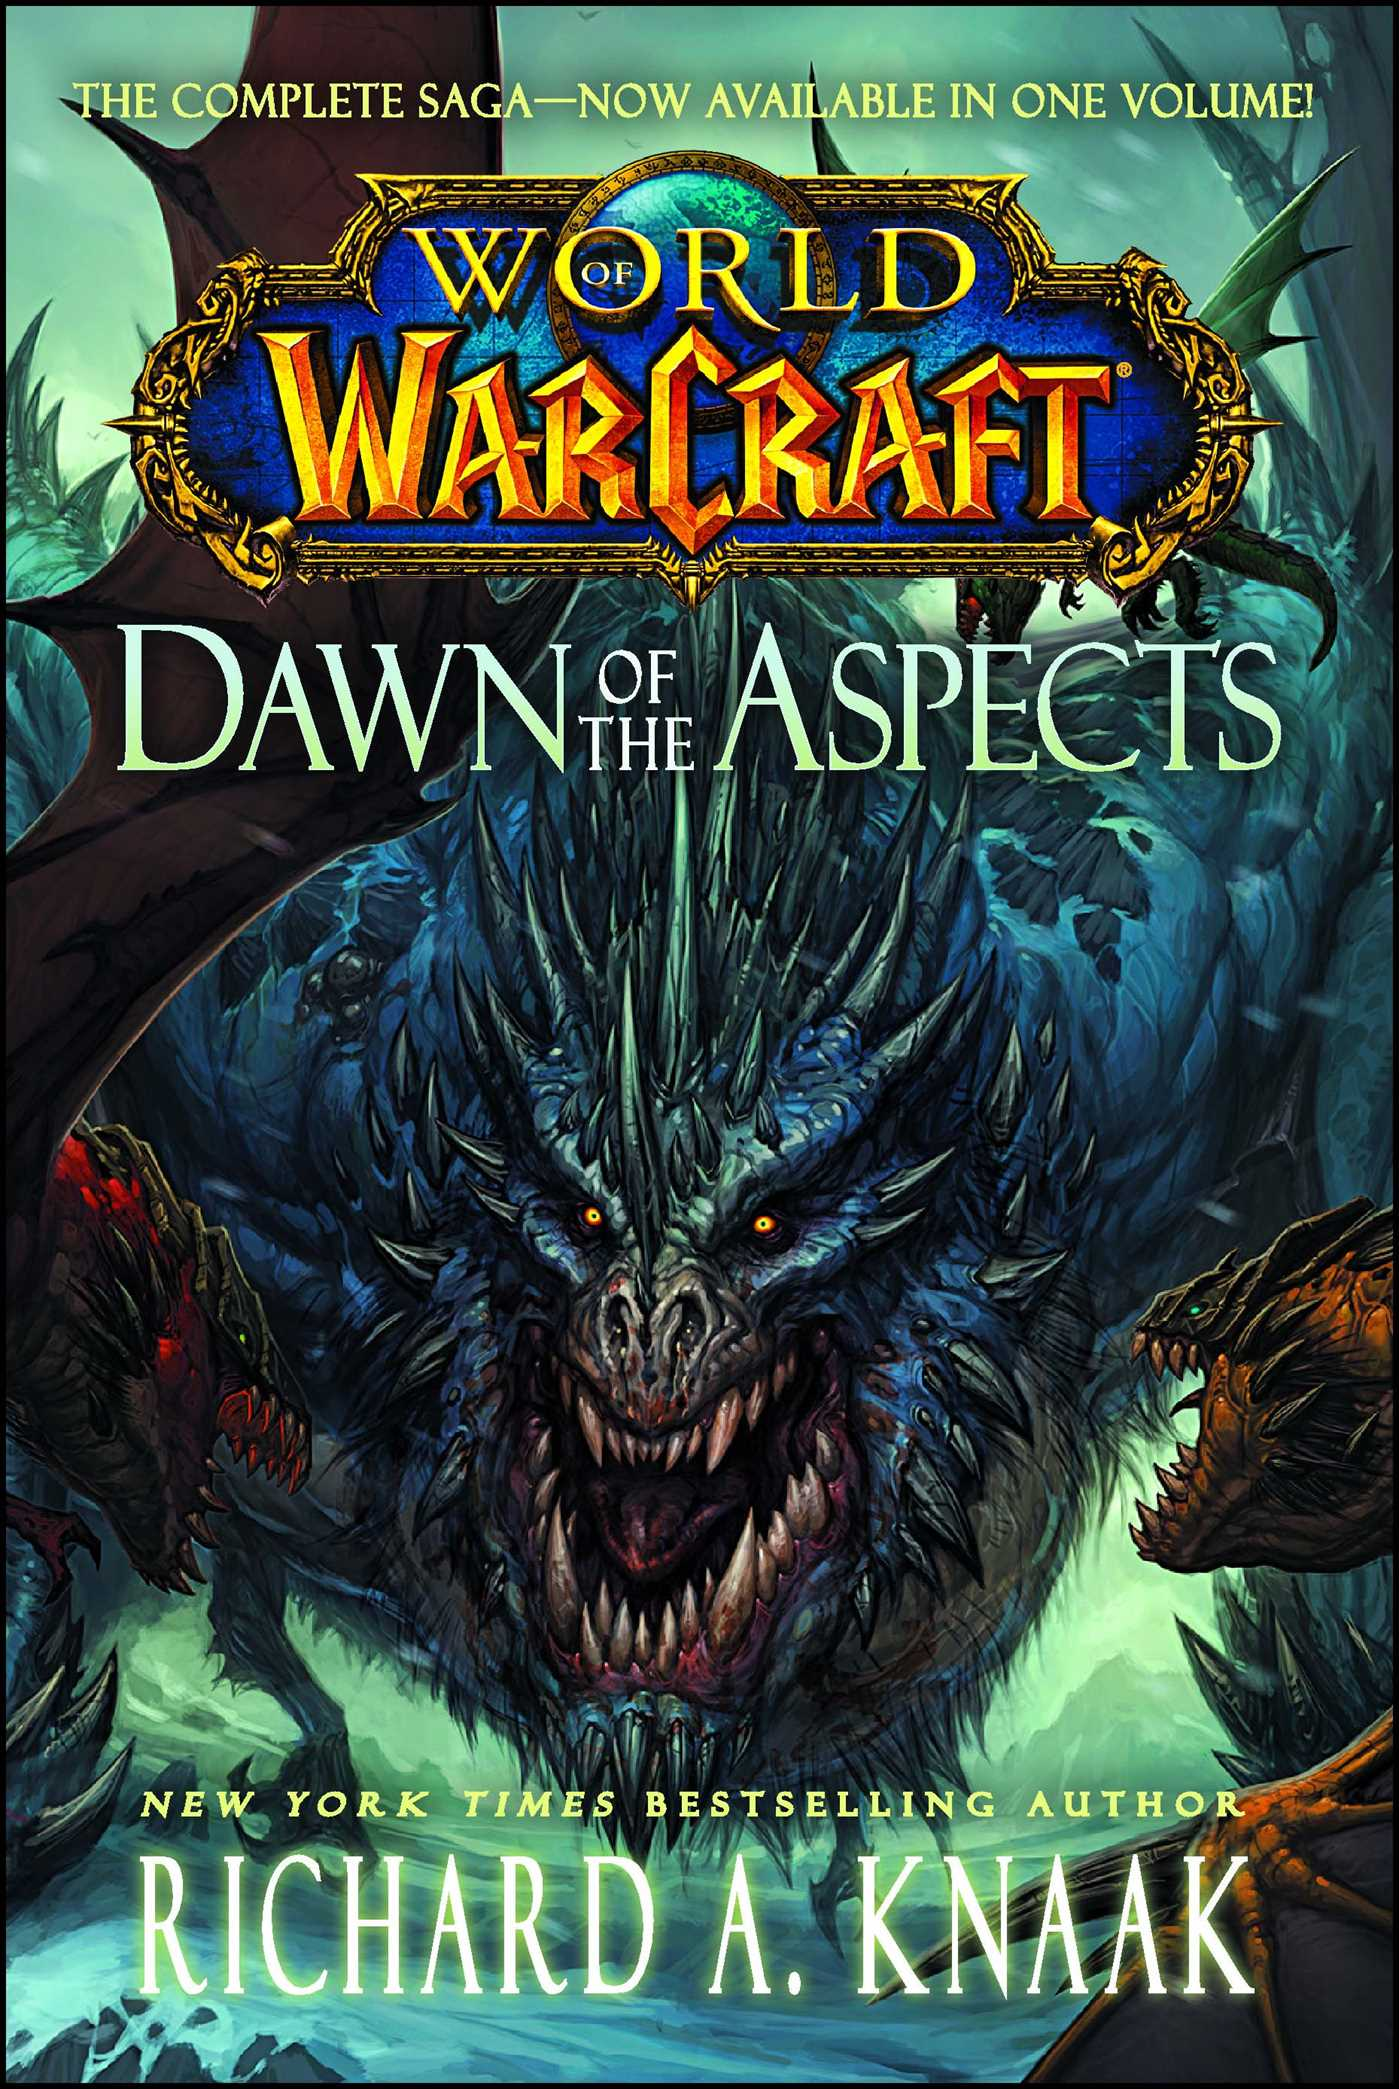 World of warcraft dawn of the aspects 9781476761374 hr